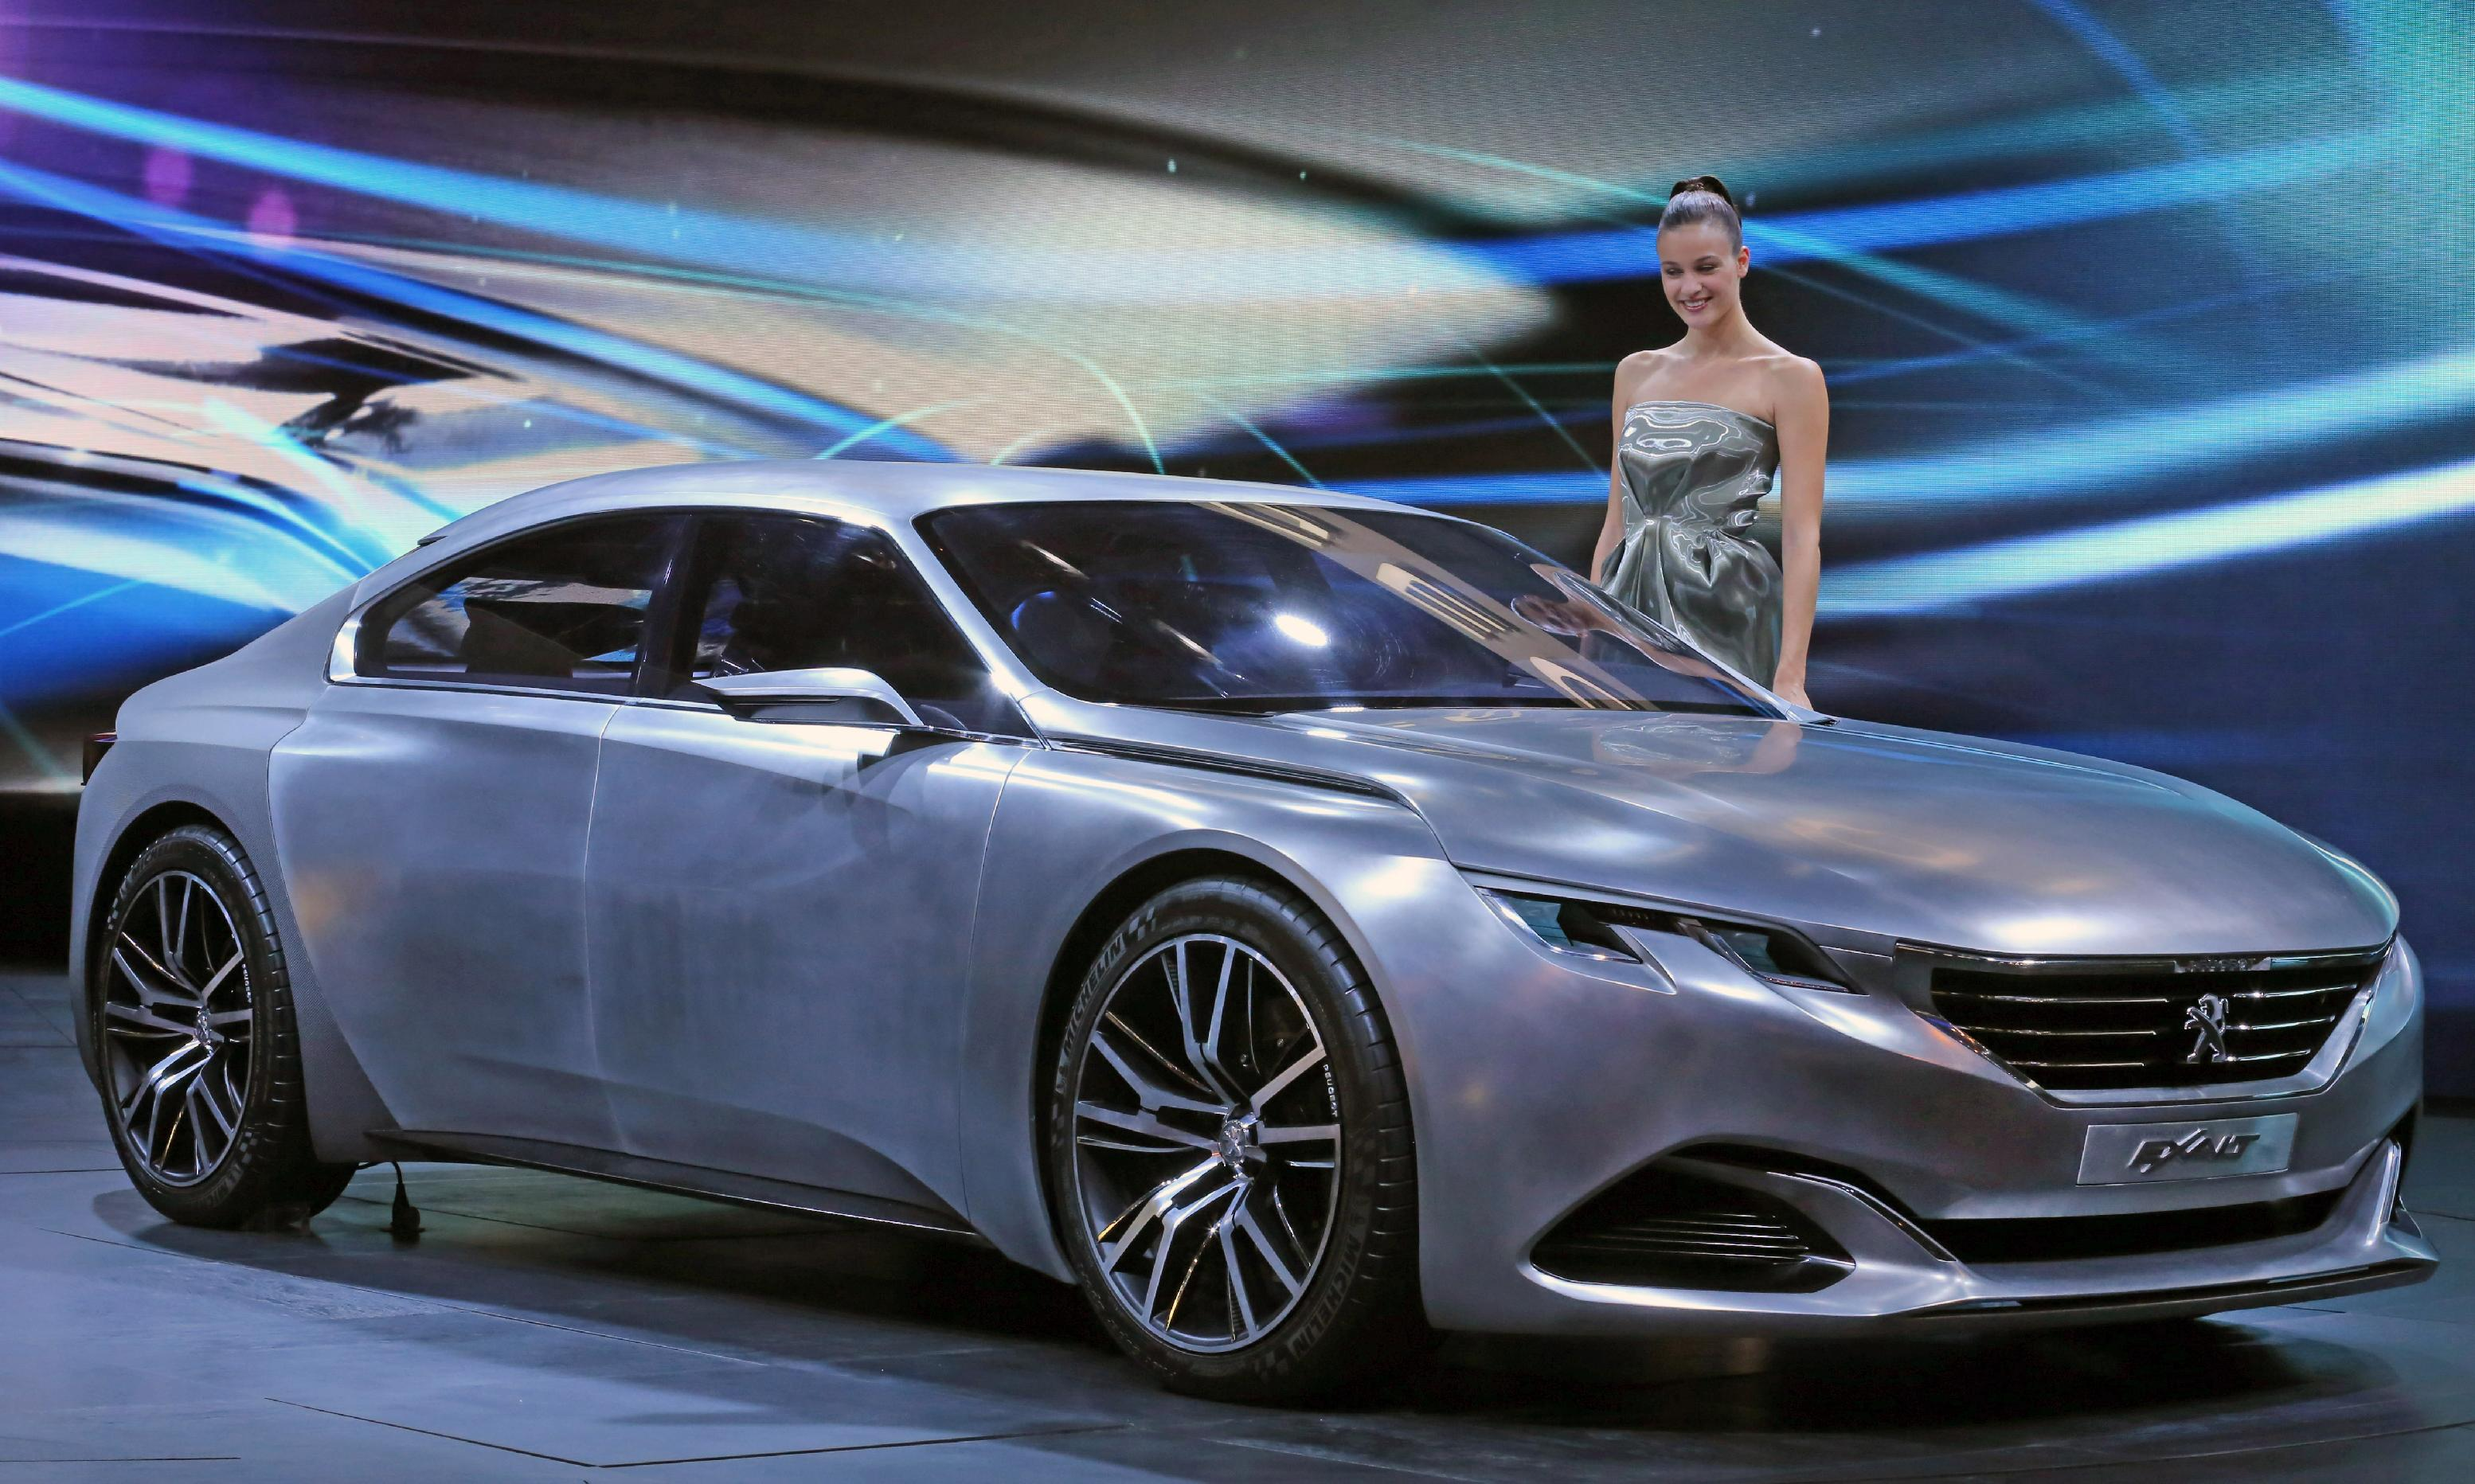 The Peugeot concept car Exalt - (AP Photo/Remy de la Mauviniere)